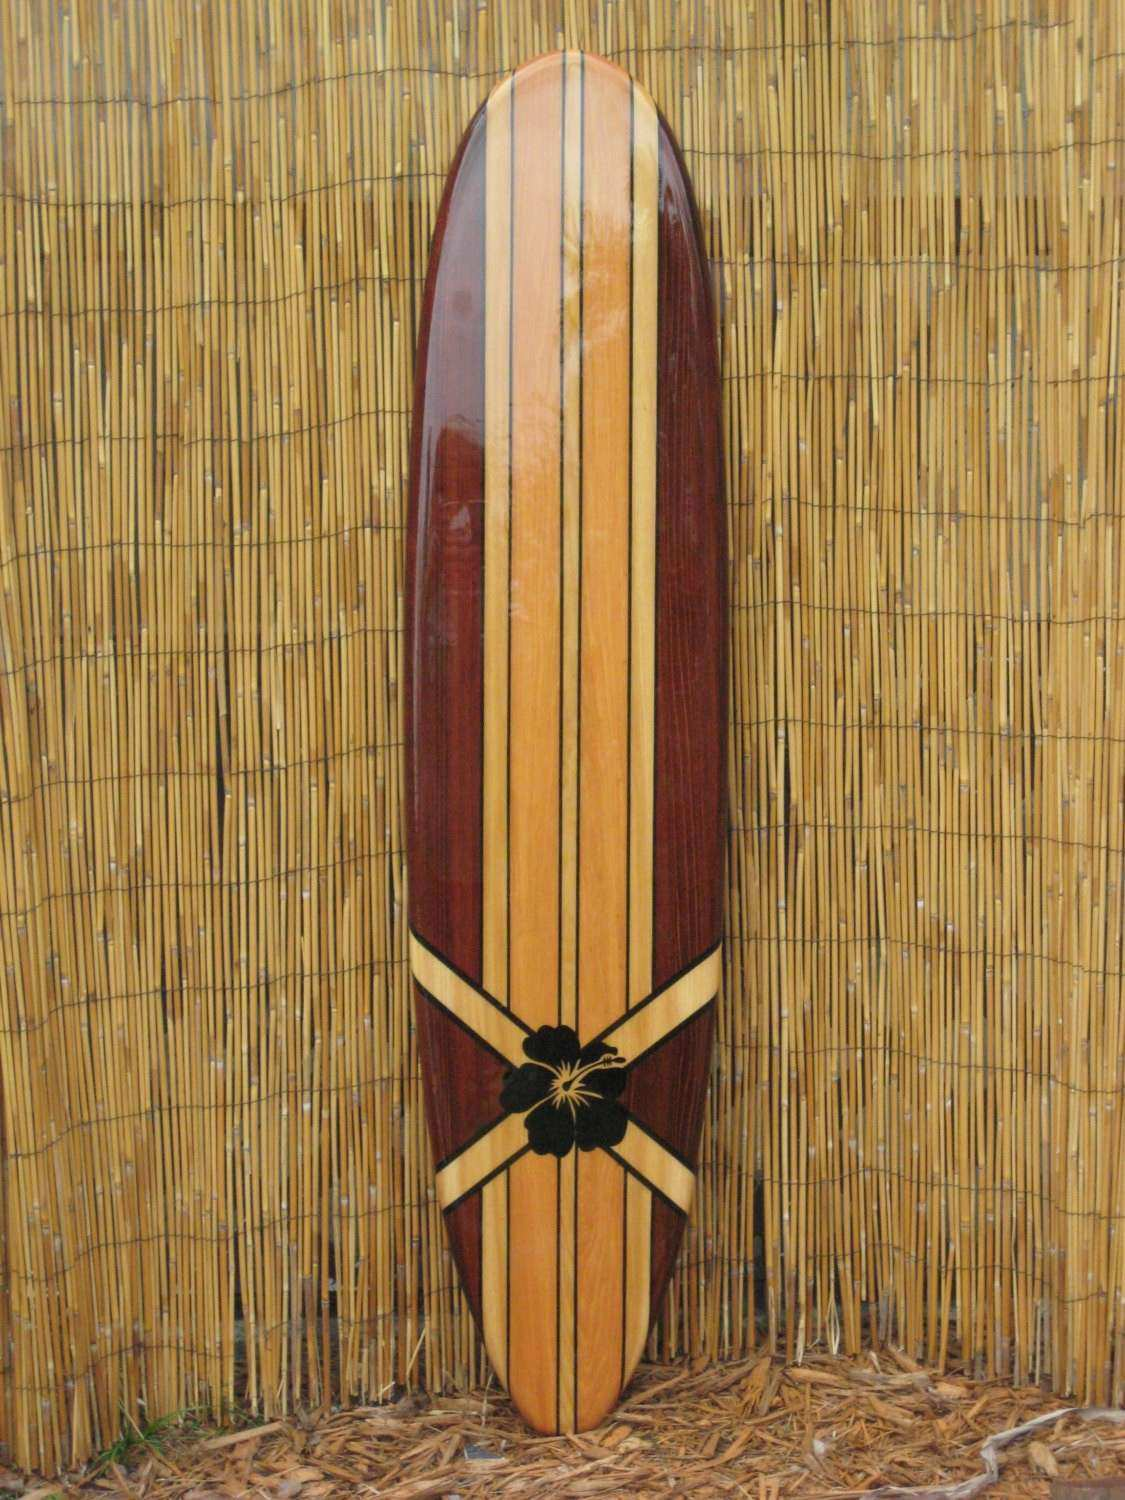 Painted Wood Wall Art Elegant Wooden Decorative Surfboard Wall Art Wall By